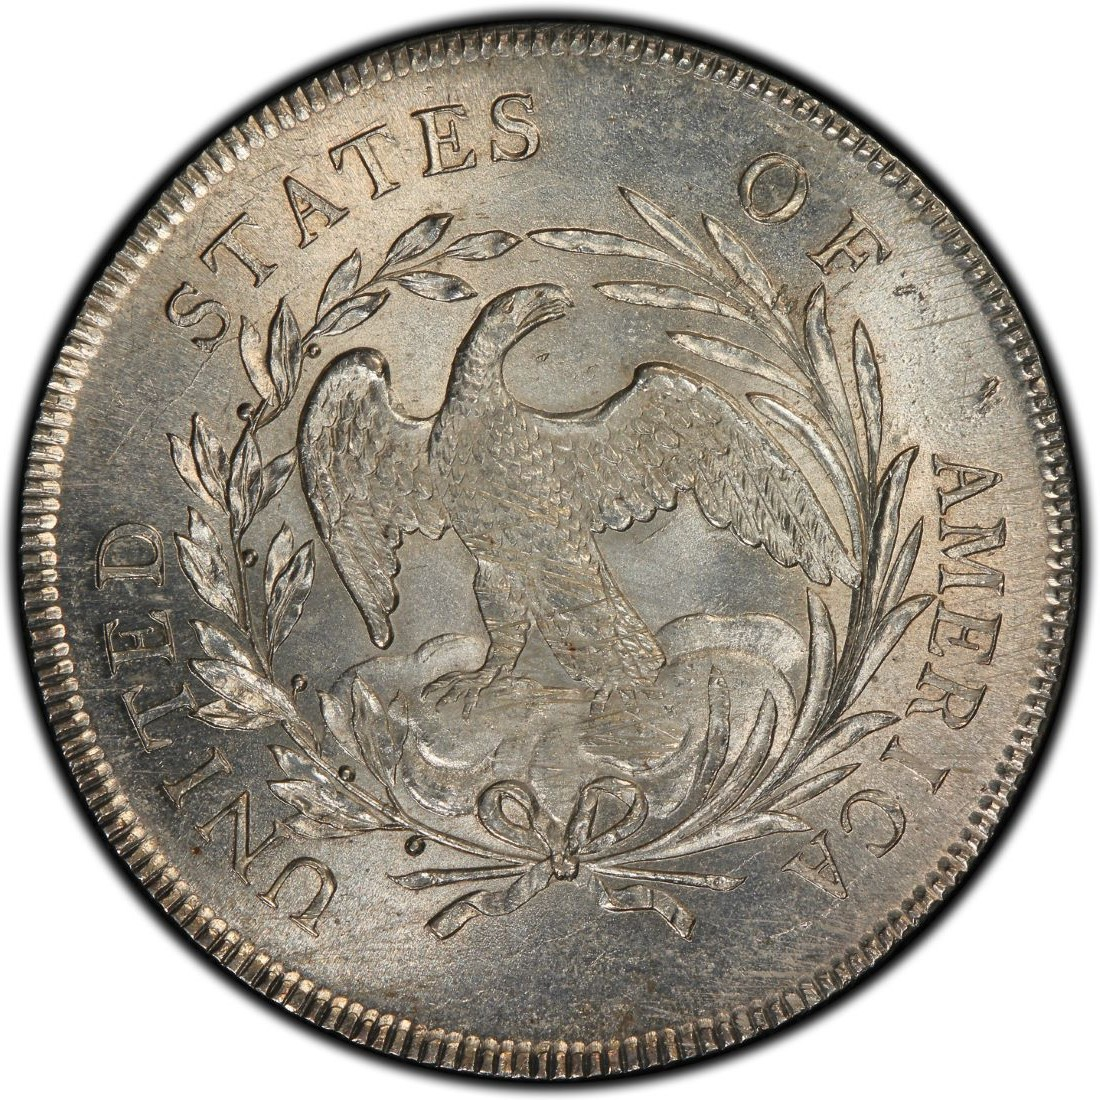 1795 Draped Bust Silver Dollar Values and Prices - Past